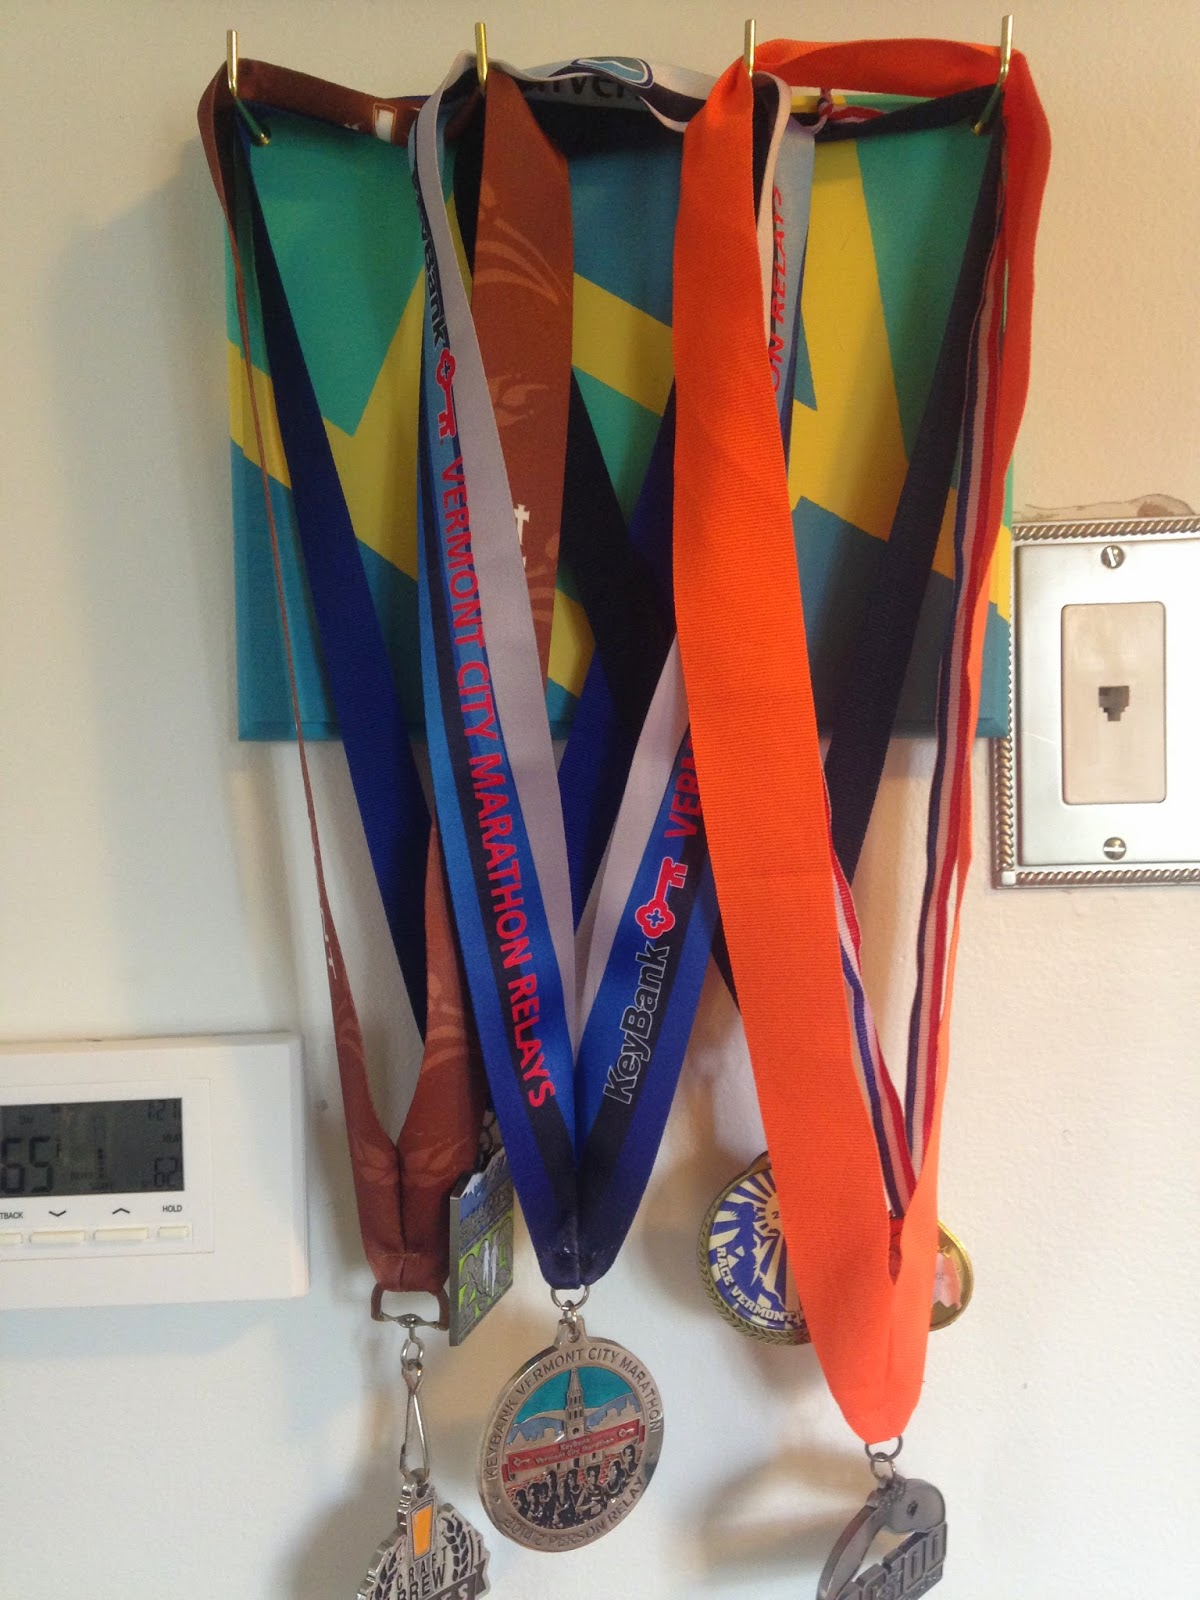 full medal rack hanging on the wall